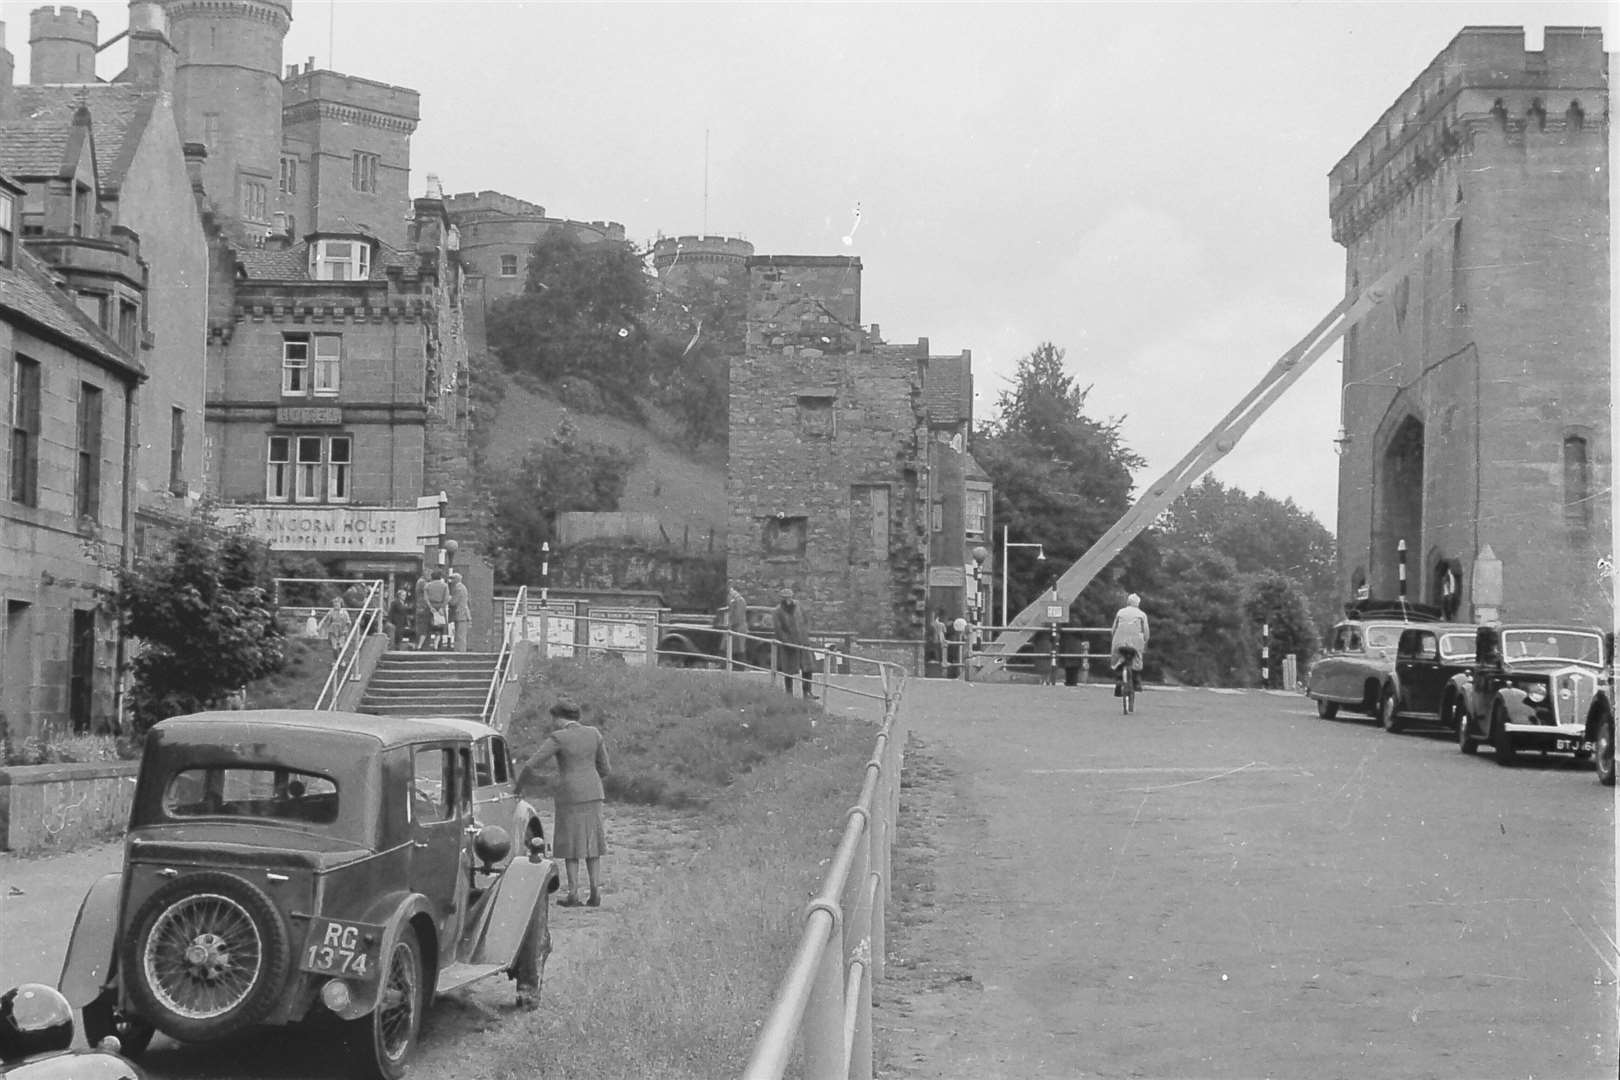 The bottom of Bridge Street in the early 1960s when the demolition of the old bridge had begun but the tower remained in place.